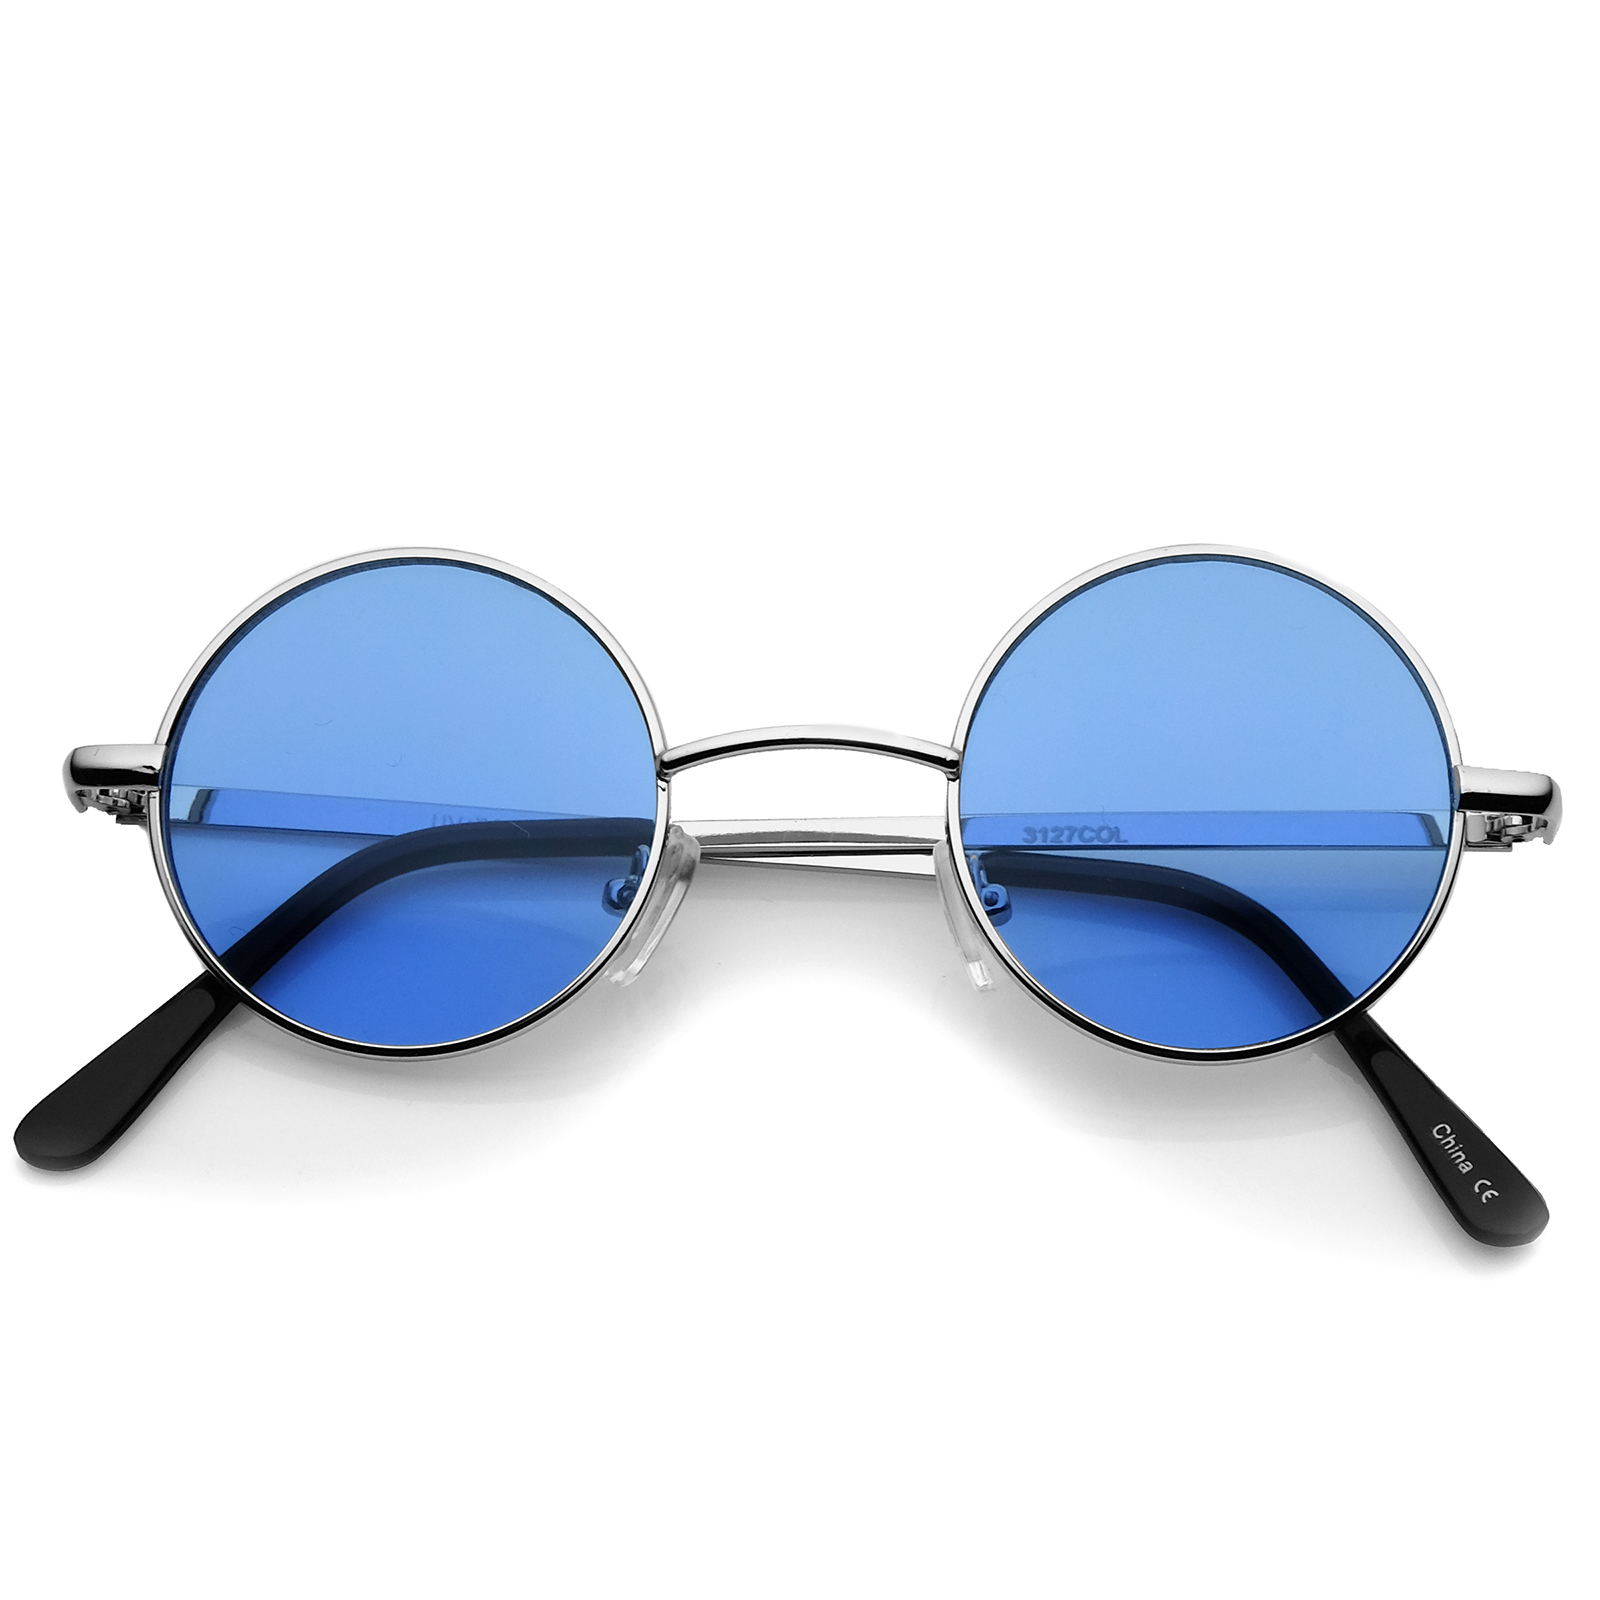 Sunglasses with Round Colored Lenses